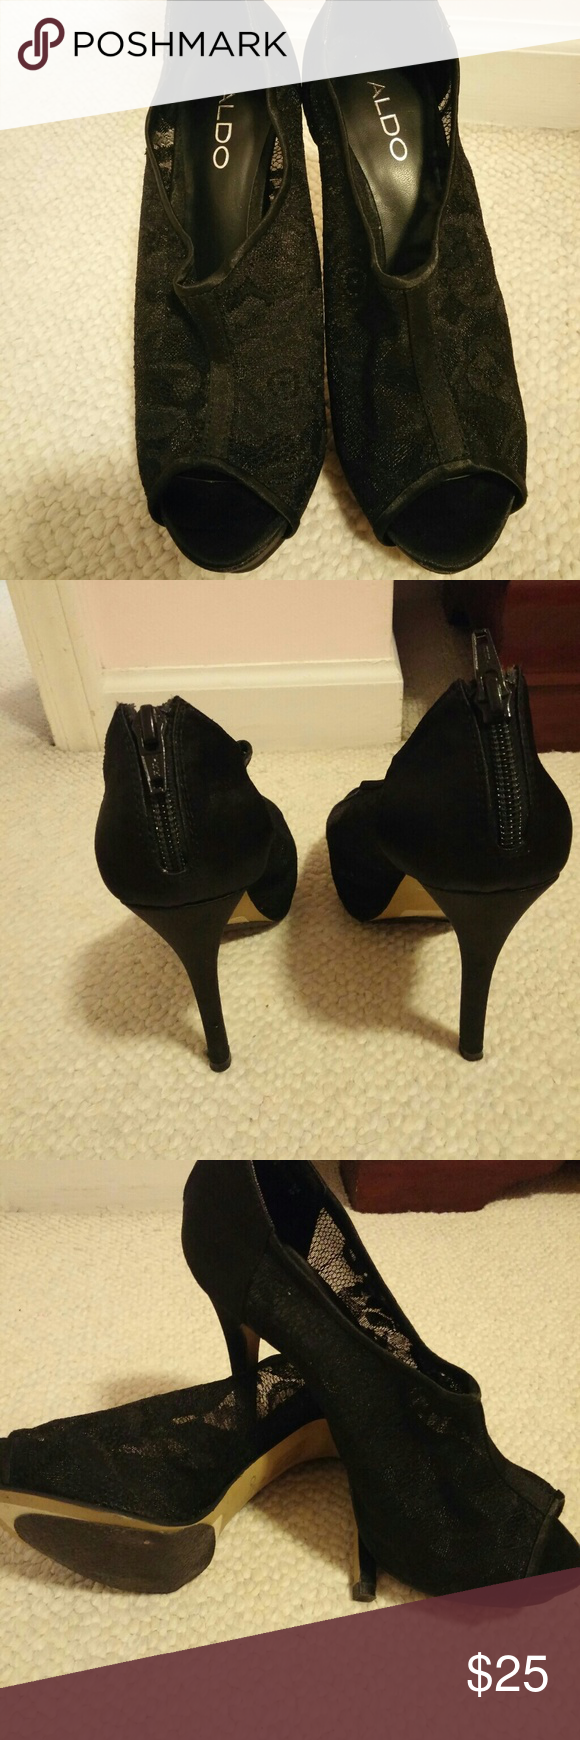 Aldo Pumps Aldo Satin and Lace Peep toe Pumps. Worn once for a wedding. Size 38. Sorry no box and no trades Aldo Shoes Heels